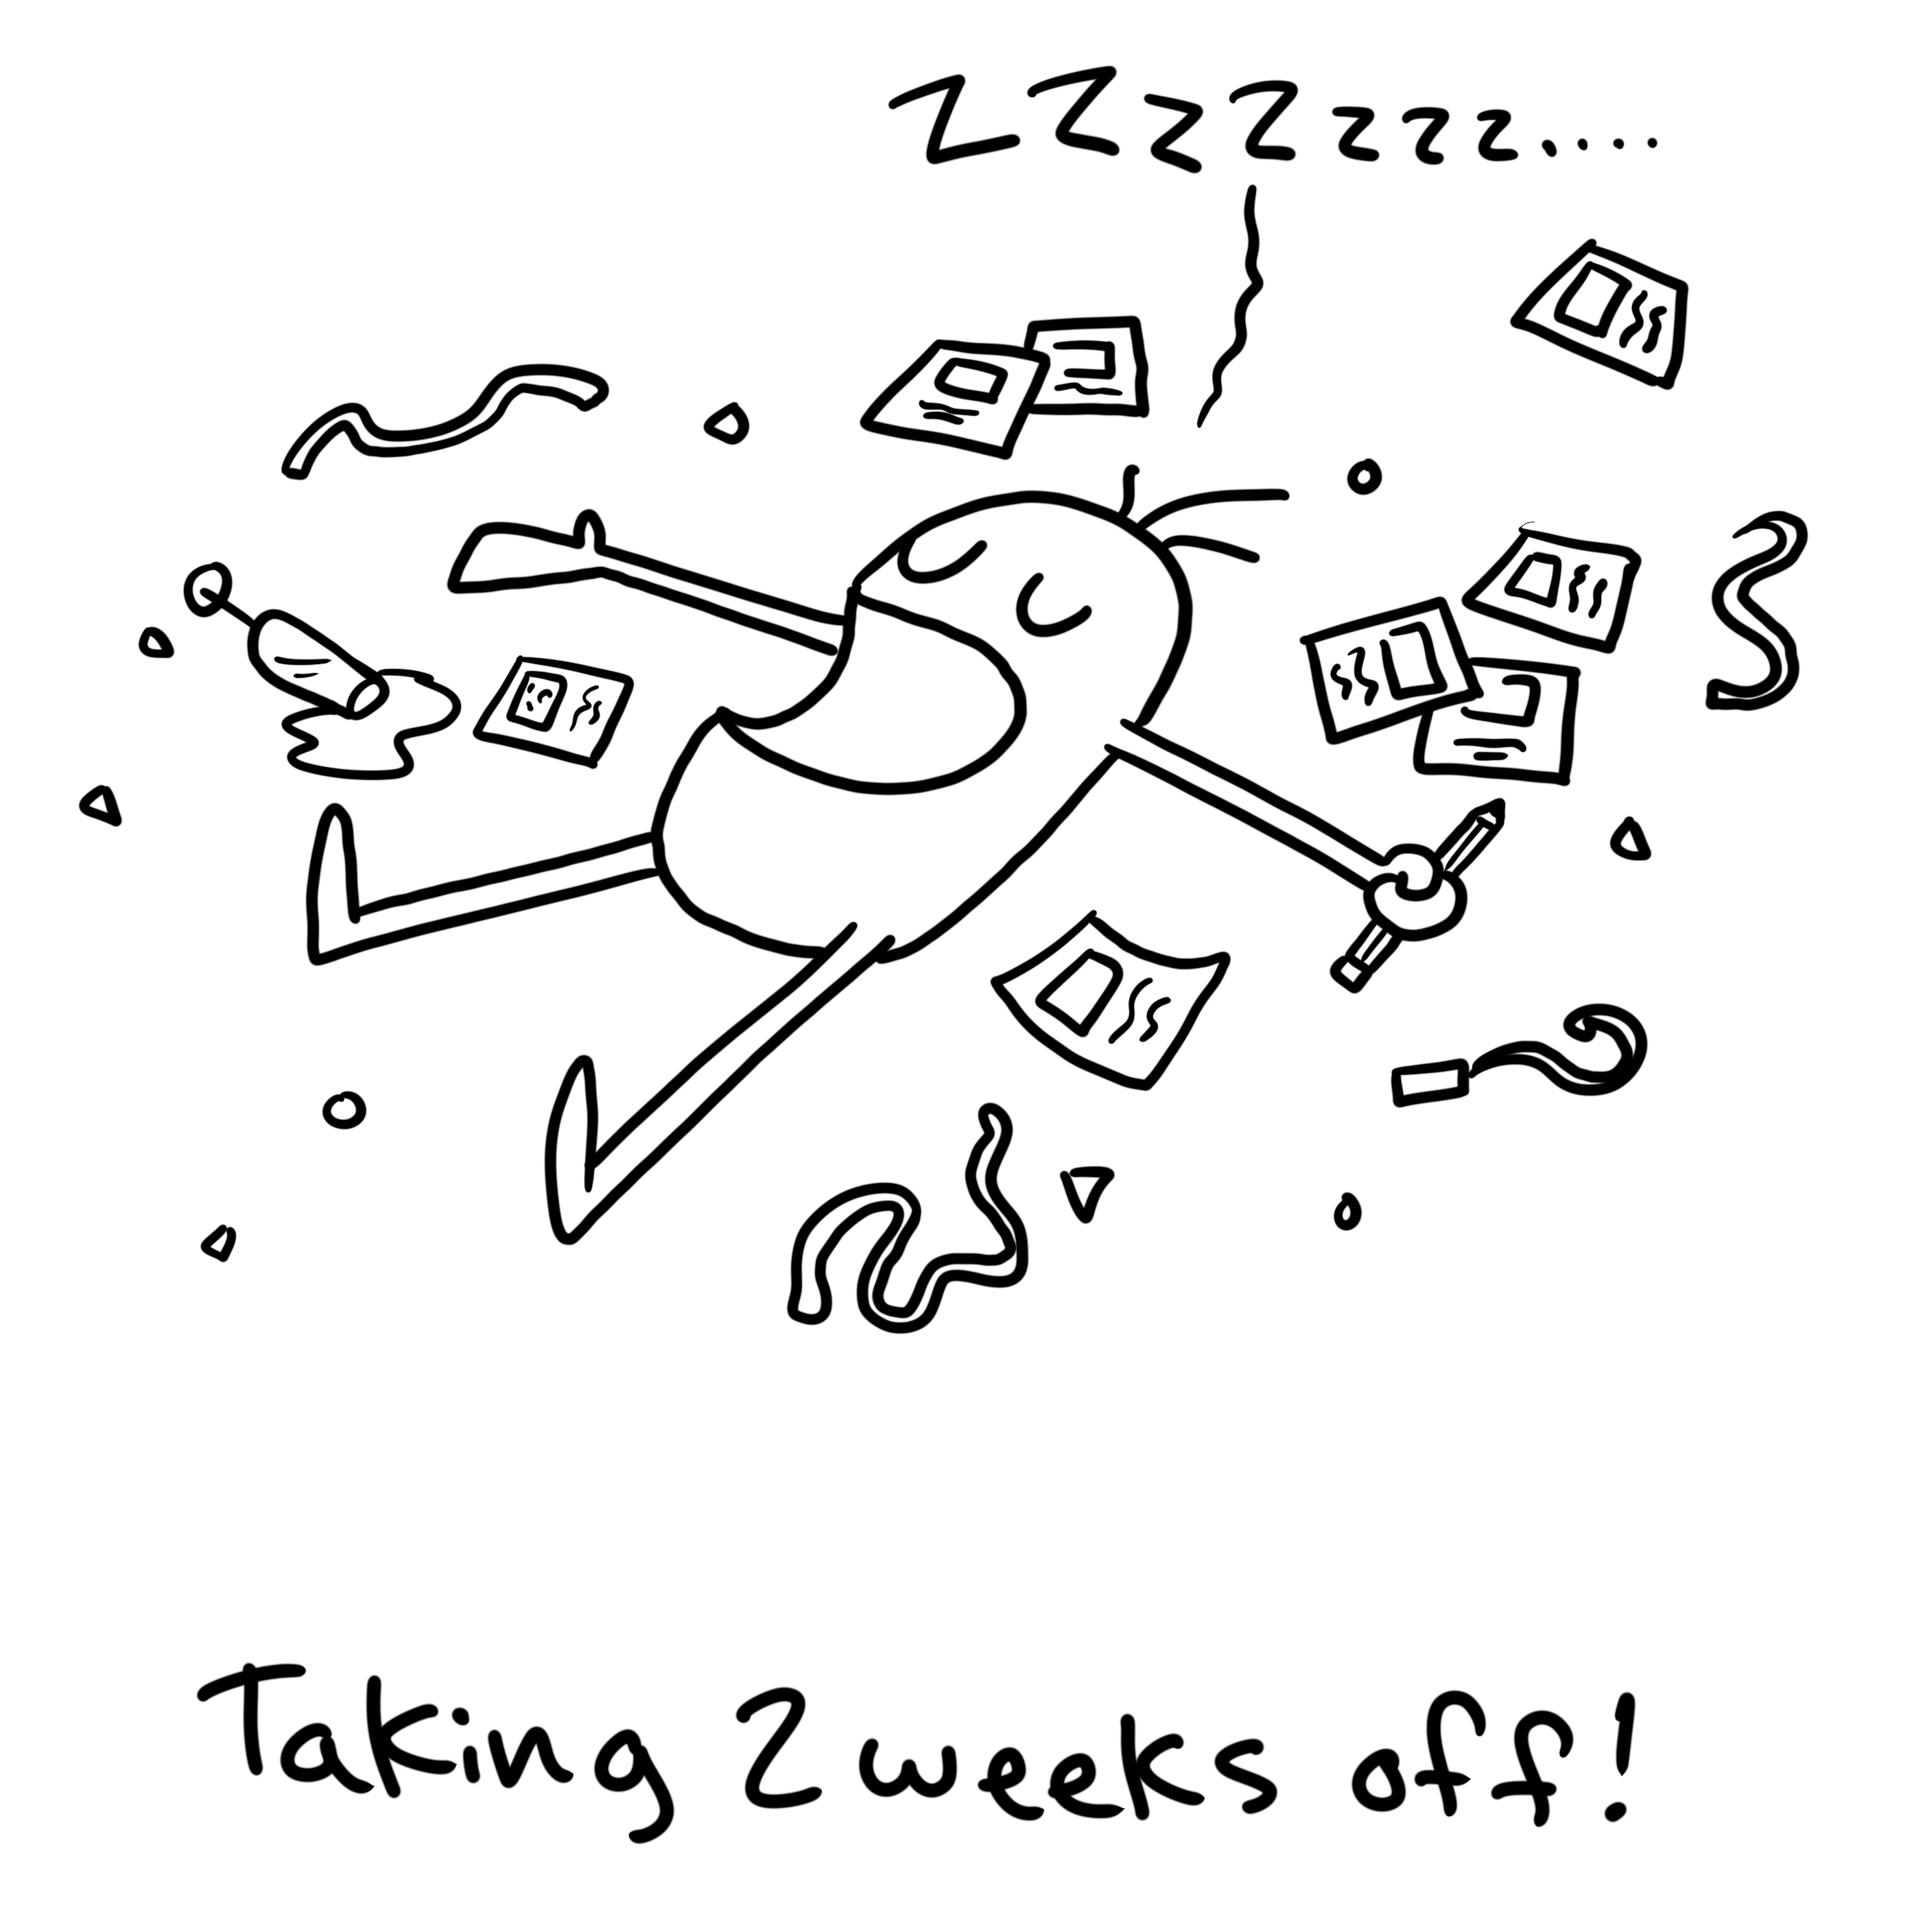 two weeks off